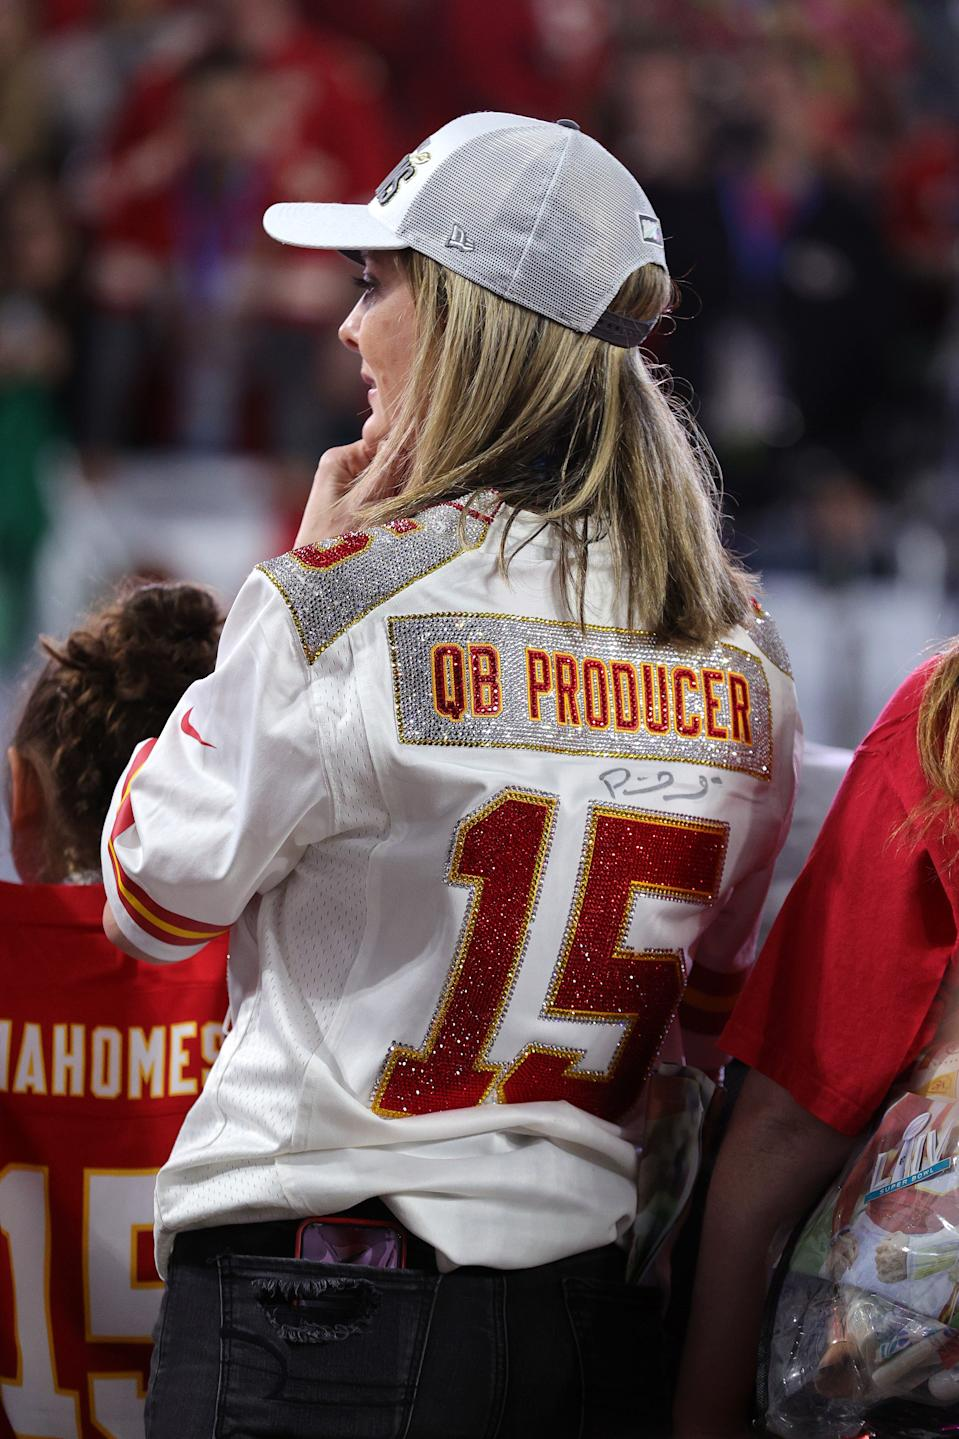 MIAMI, FLORIDA - FEBRUARY 02: Patrick Mahomes mother, Randi Martin, looks on after the Kansas City Chiefs defeated the San Francisco 49ers 31-20 in Super Bowl LIV at Hard Rock Stadium on February 02, 2020 in Miami, Florida. (Photo by Tom Pennington/Getty Images)